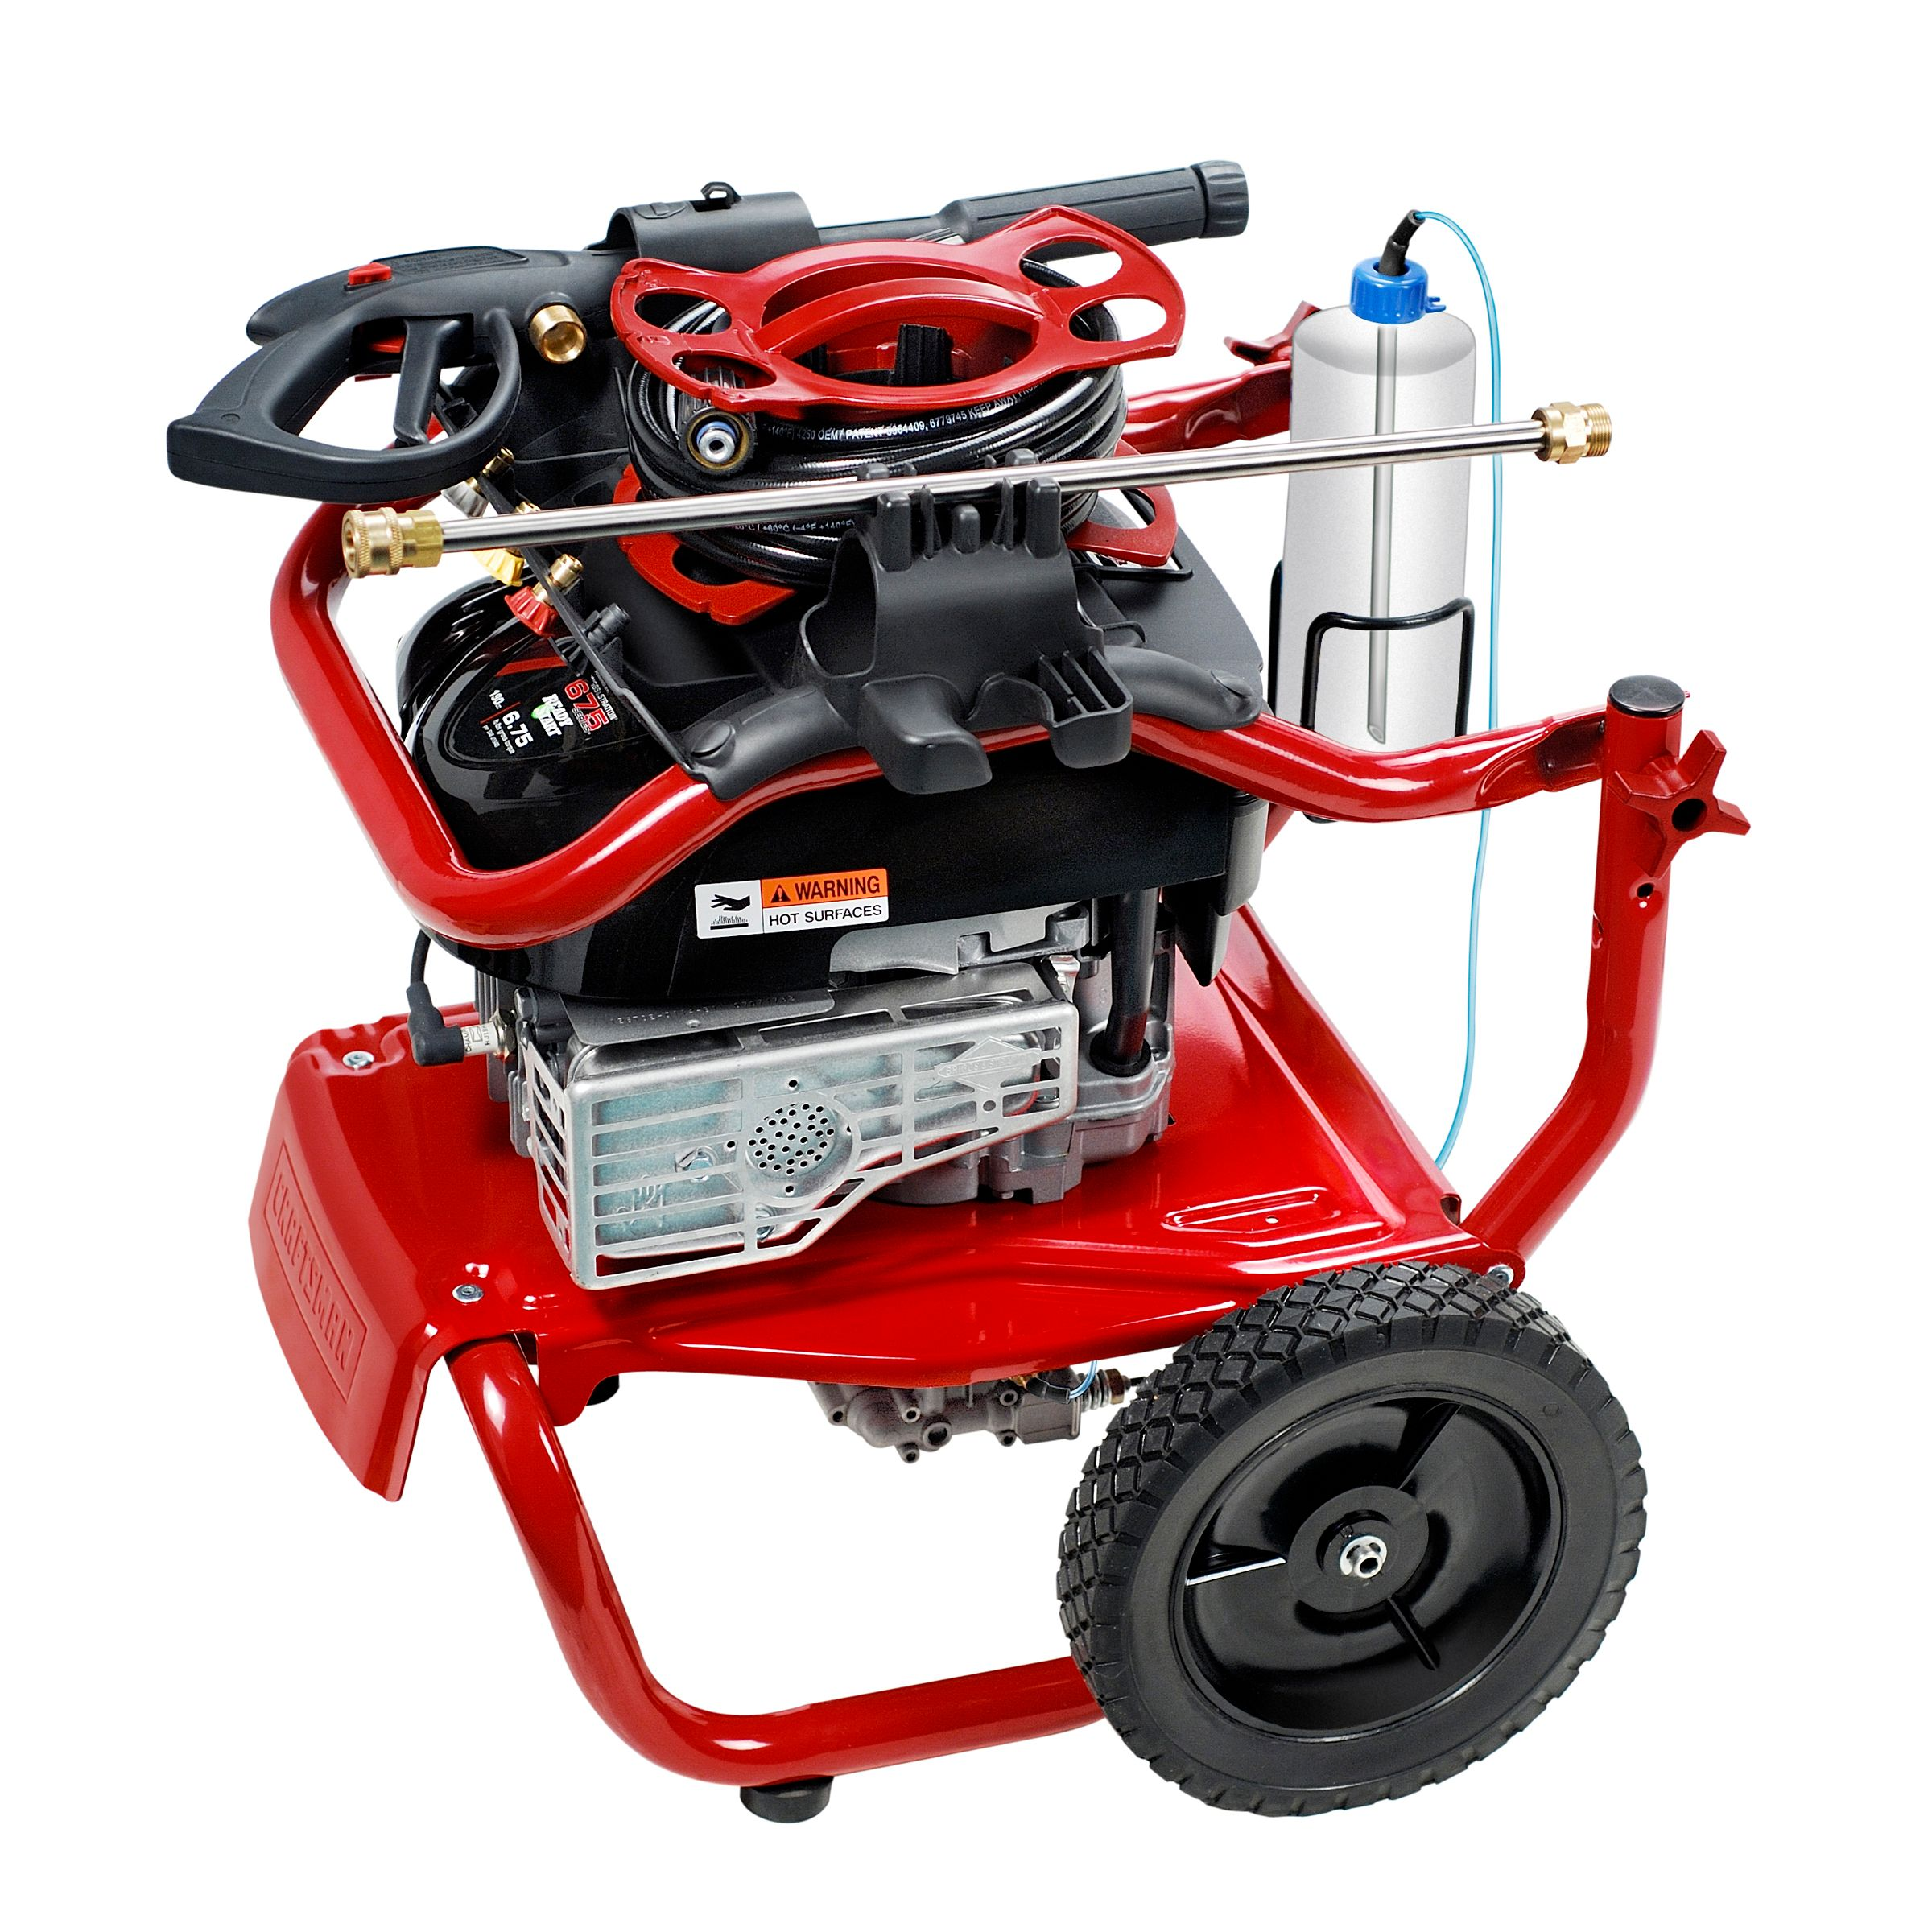 Craftsman 2550 MAX PSI, 2.3 MAX GPM, Briggs & Stratton Powered Pressure Washer